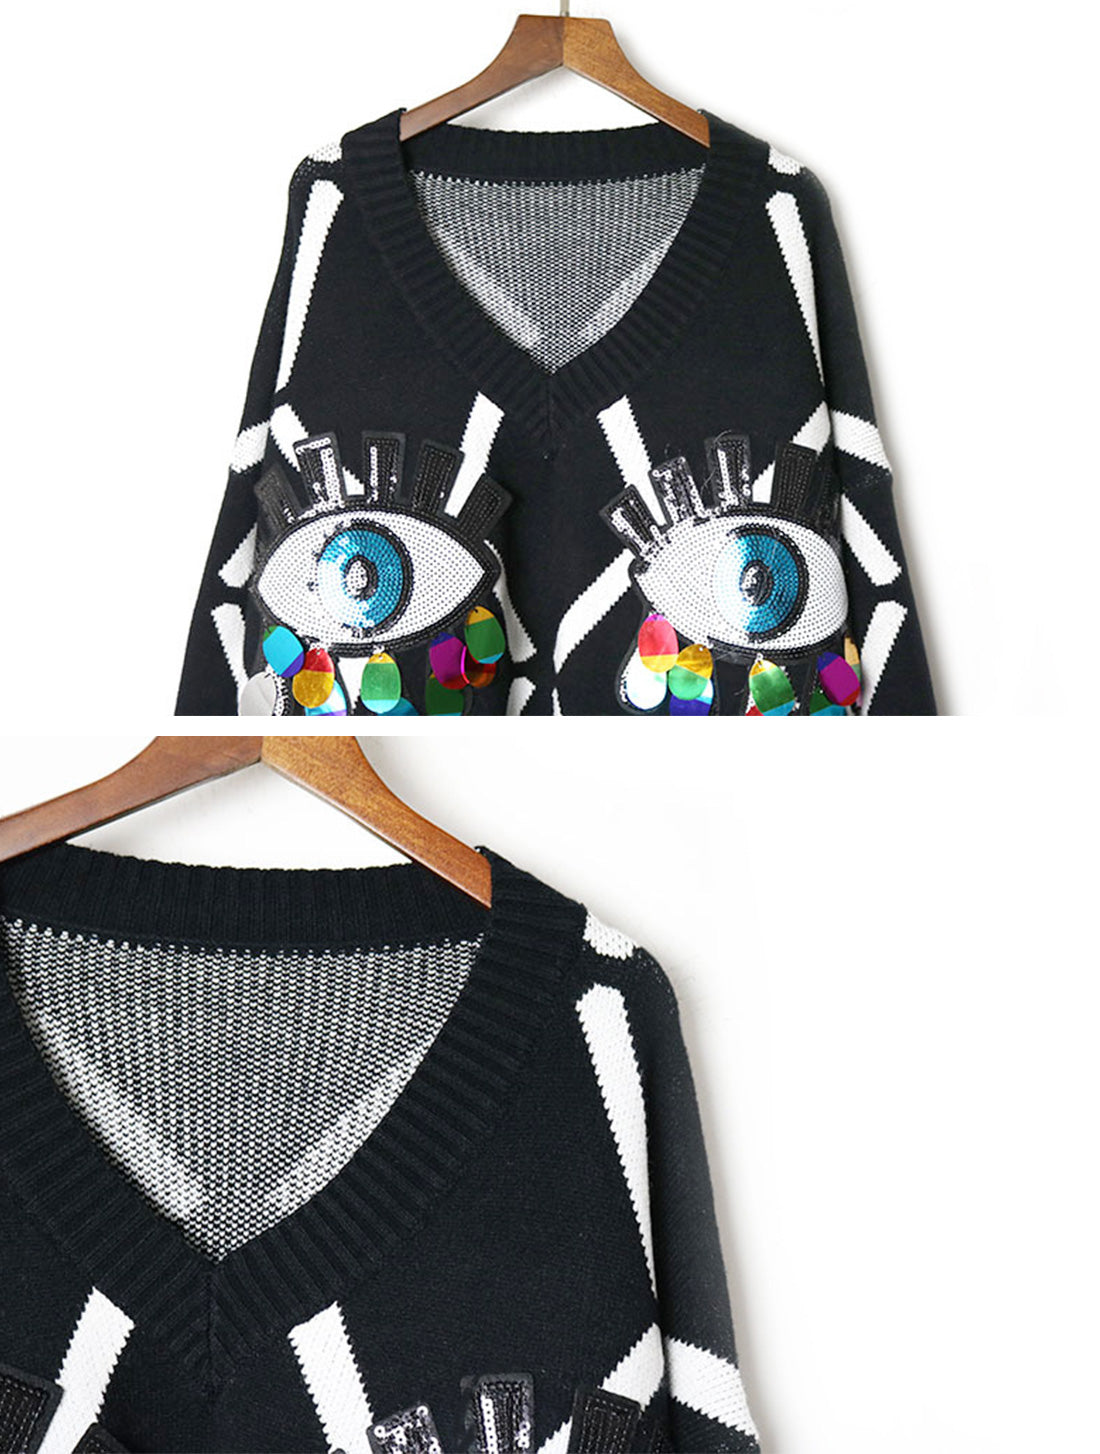 I can See You Black Sweater Top Details 1